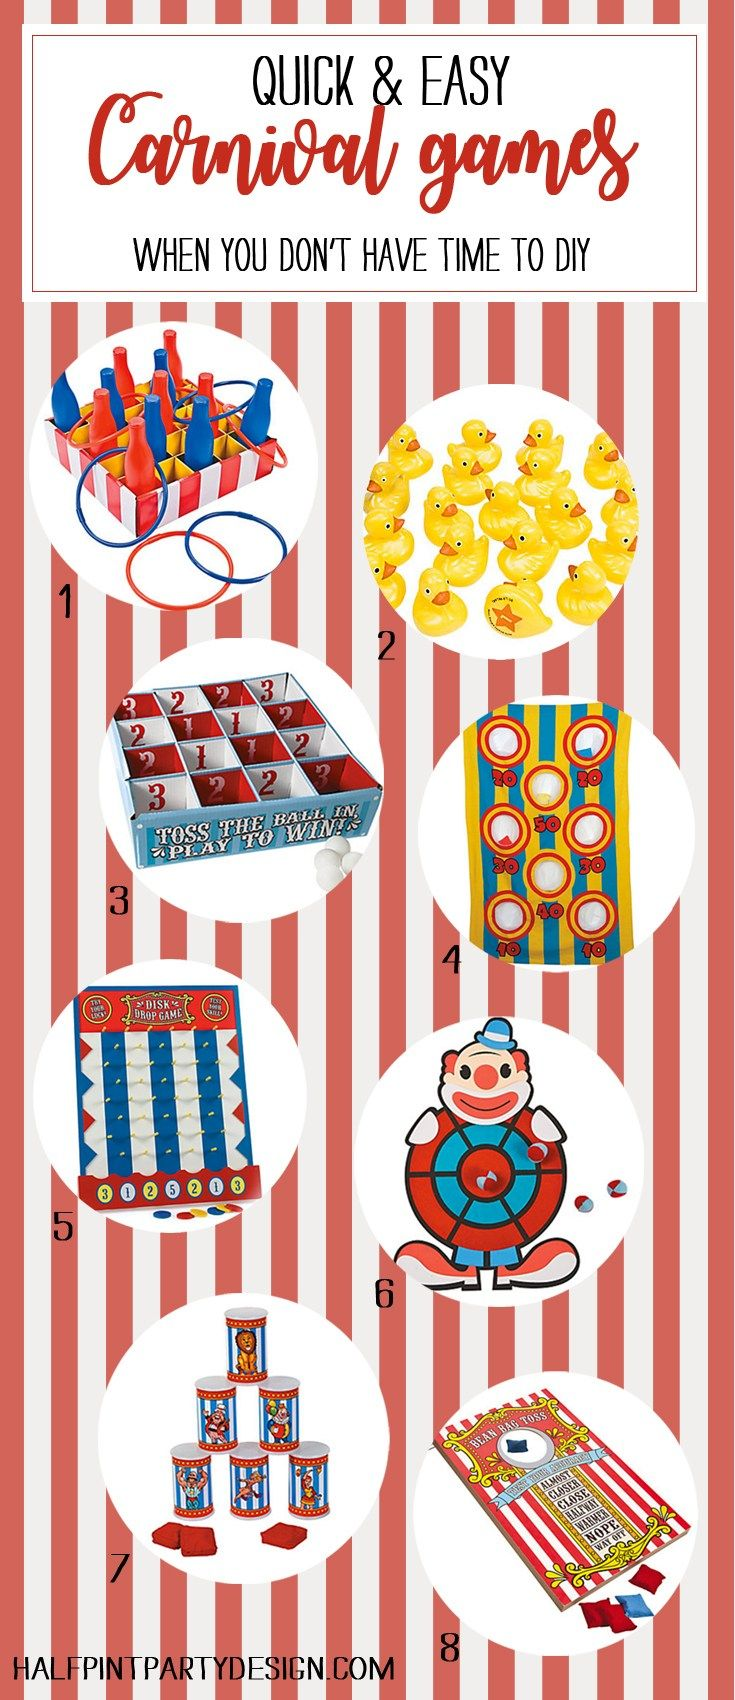 Have a PTA fundraiser coming up? Birthday party? Back to school carnival? With all the craziness that ensues here are some easy carnival games you can buy when you don't have time to DIY. Spend your time building all those booths!! - Painless Carnival Party Amusements | Halfpint Design